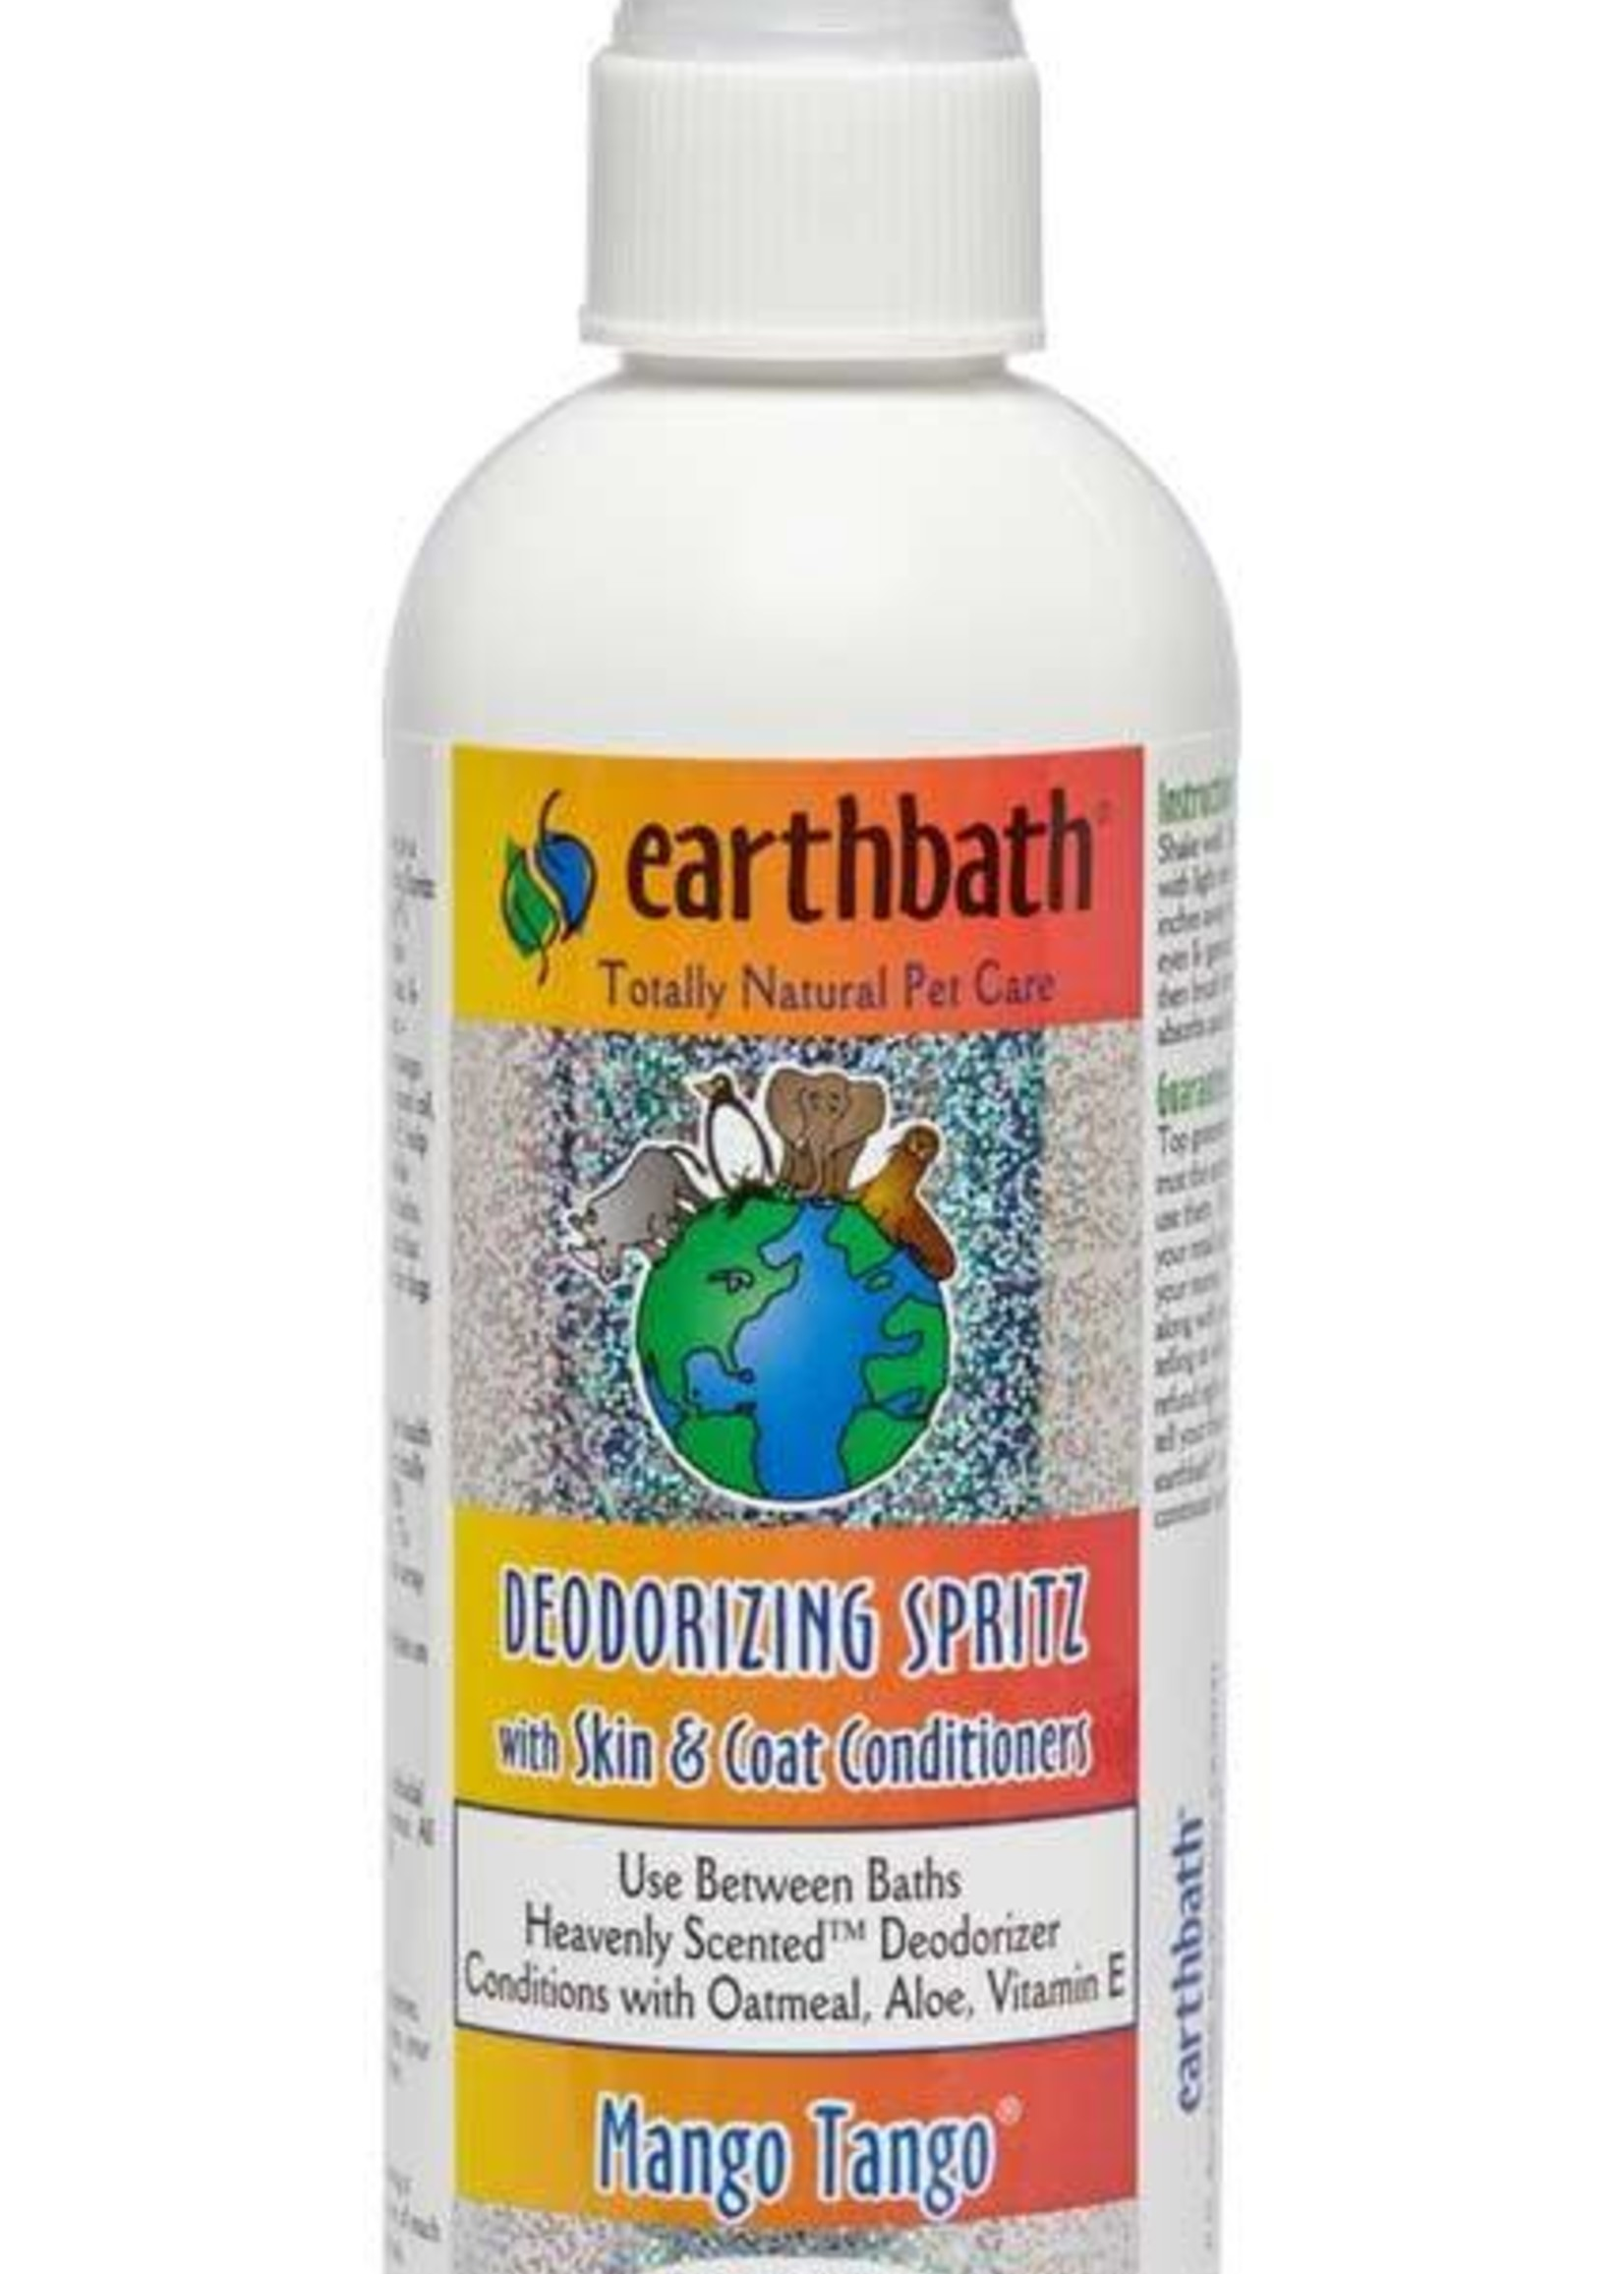 EARTHBATH/EARTHWHILE ENDEAVORS Earthbath Deodorizing Spritz Mango Tango 8oz